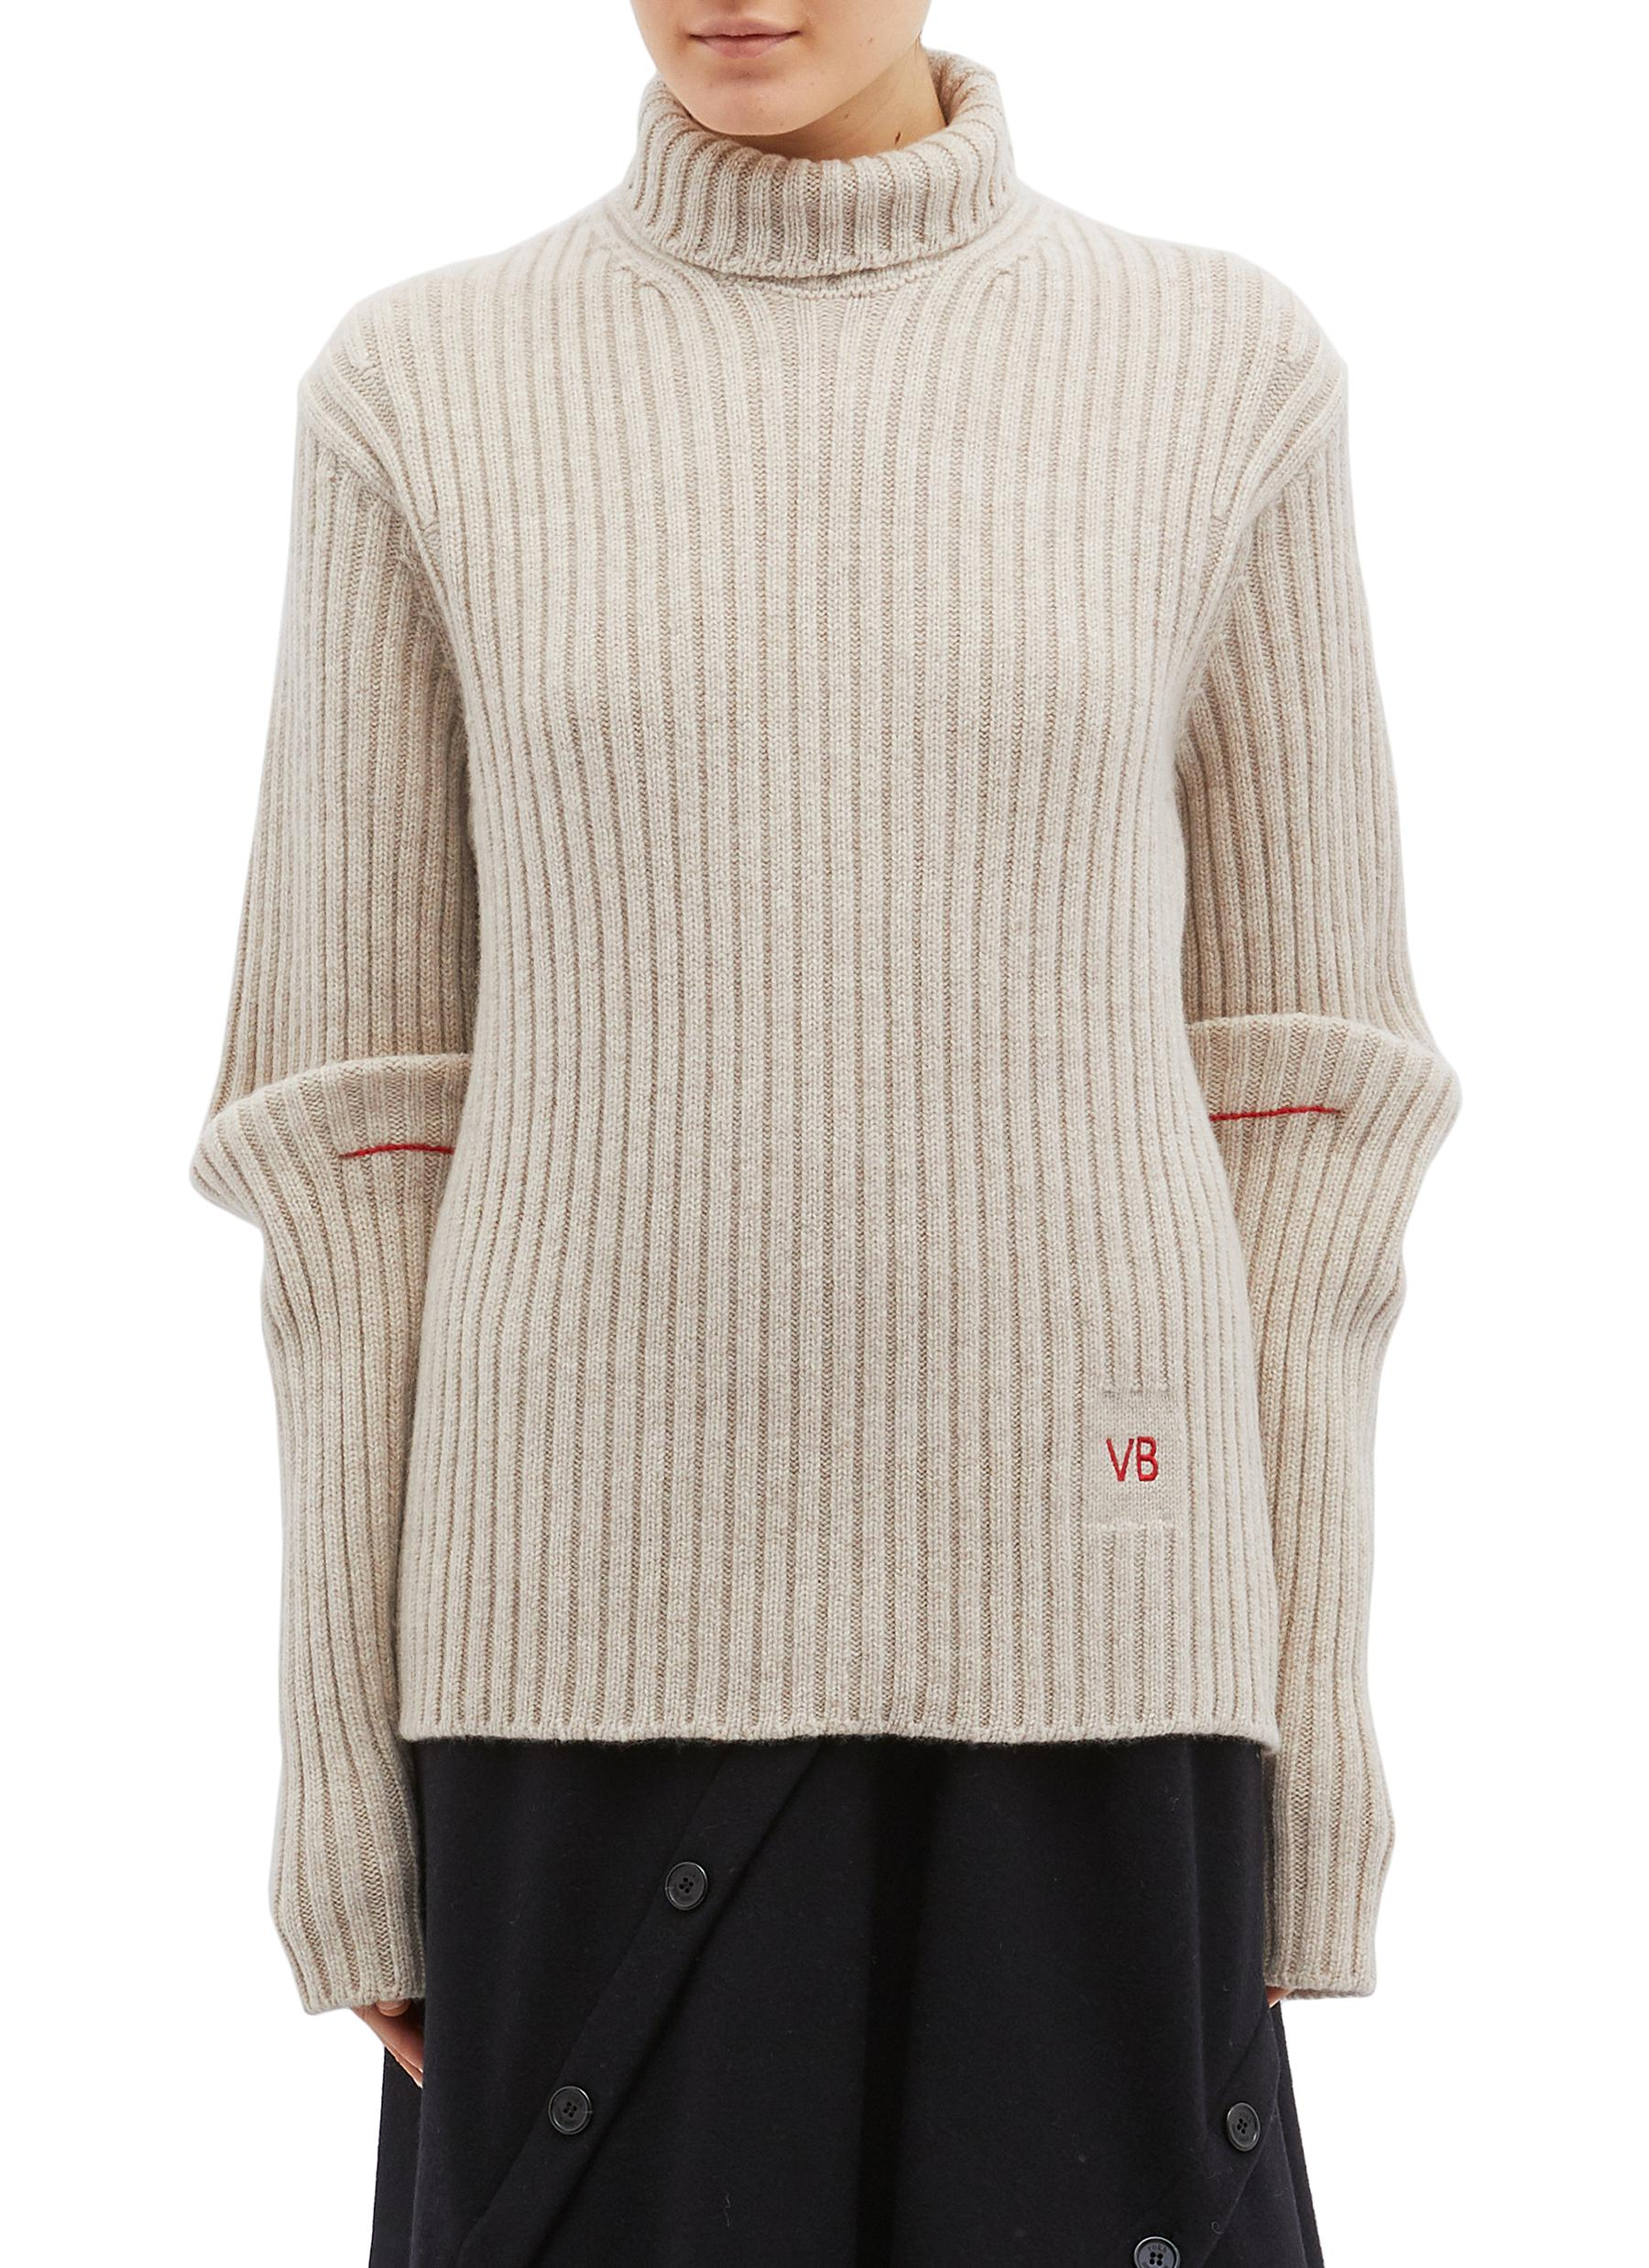 Folded sleeve wool rib knit sweater by Victoria Beckham